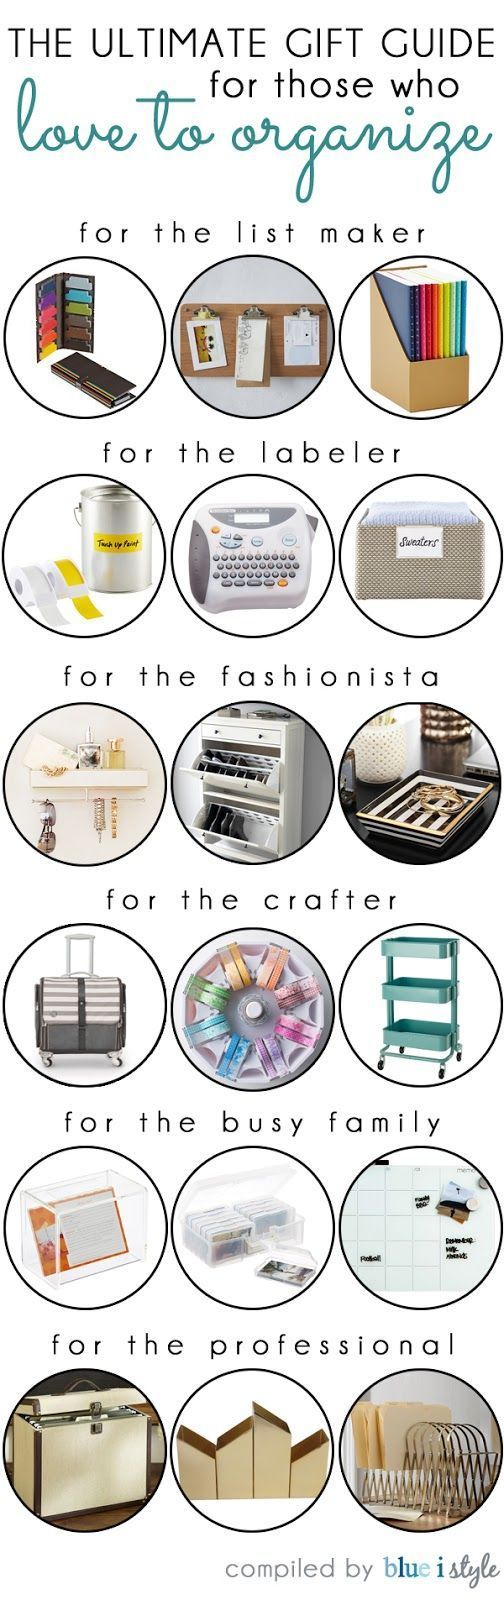 ULTIMATE GIFT GUIDE FOR THOSE WHO LOVE TO ORGANIZE! Do you have an organizing fan on your shopping list this holiday season? You know the type... they are always making lists, labeling everything in sight, and making sure there's a place for everything. These are the gifts they would love to find under the tree!